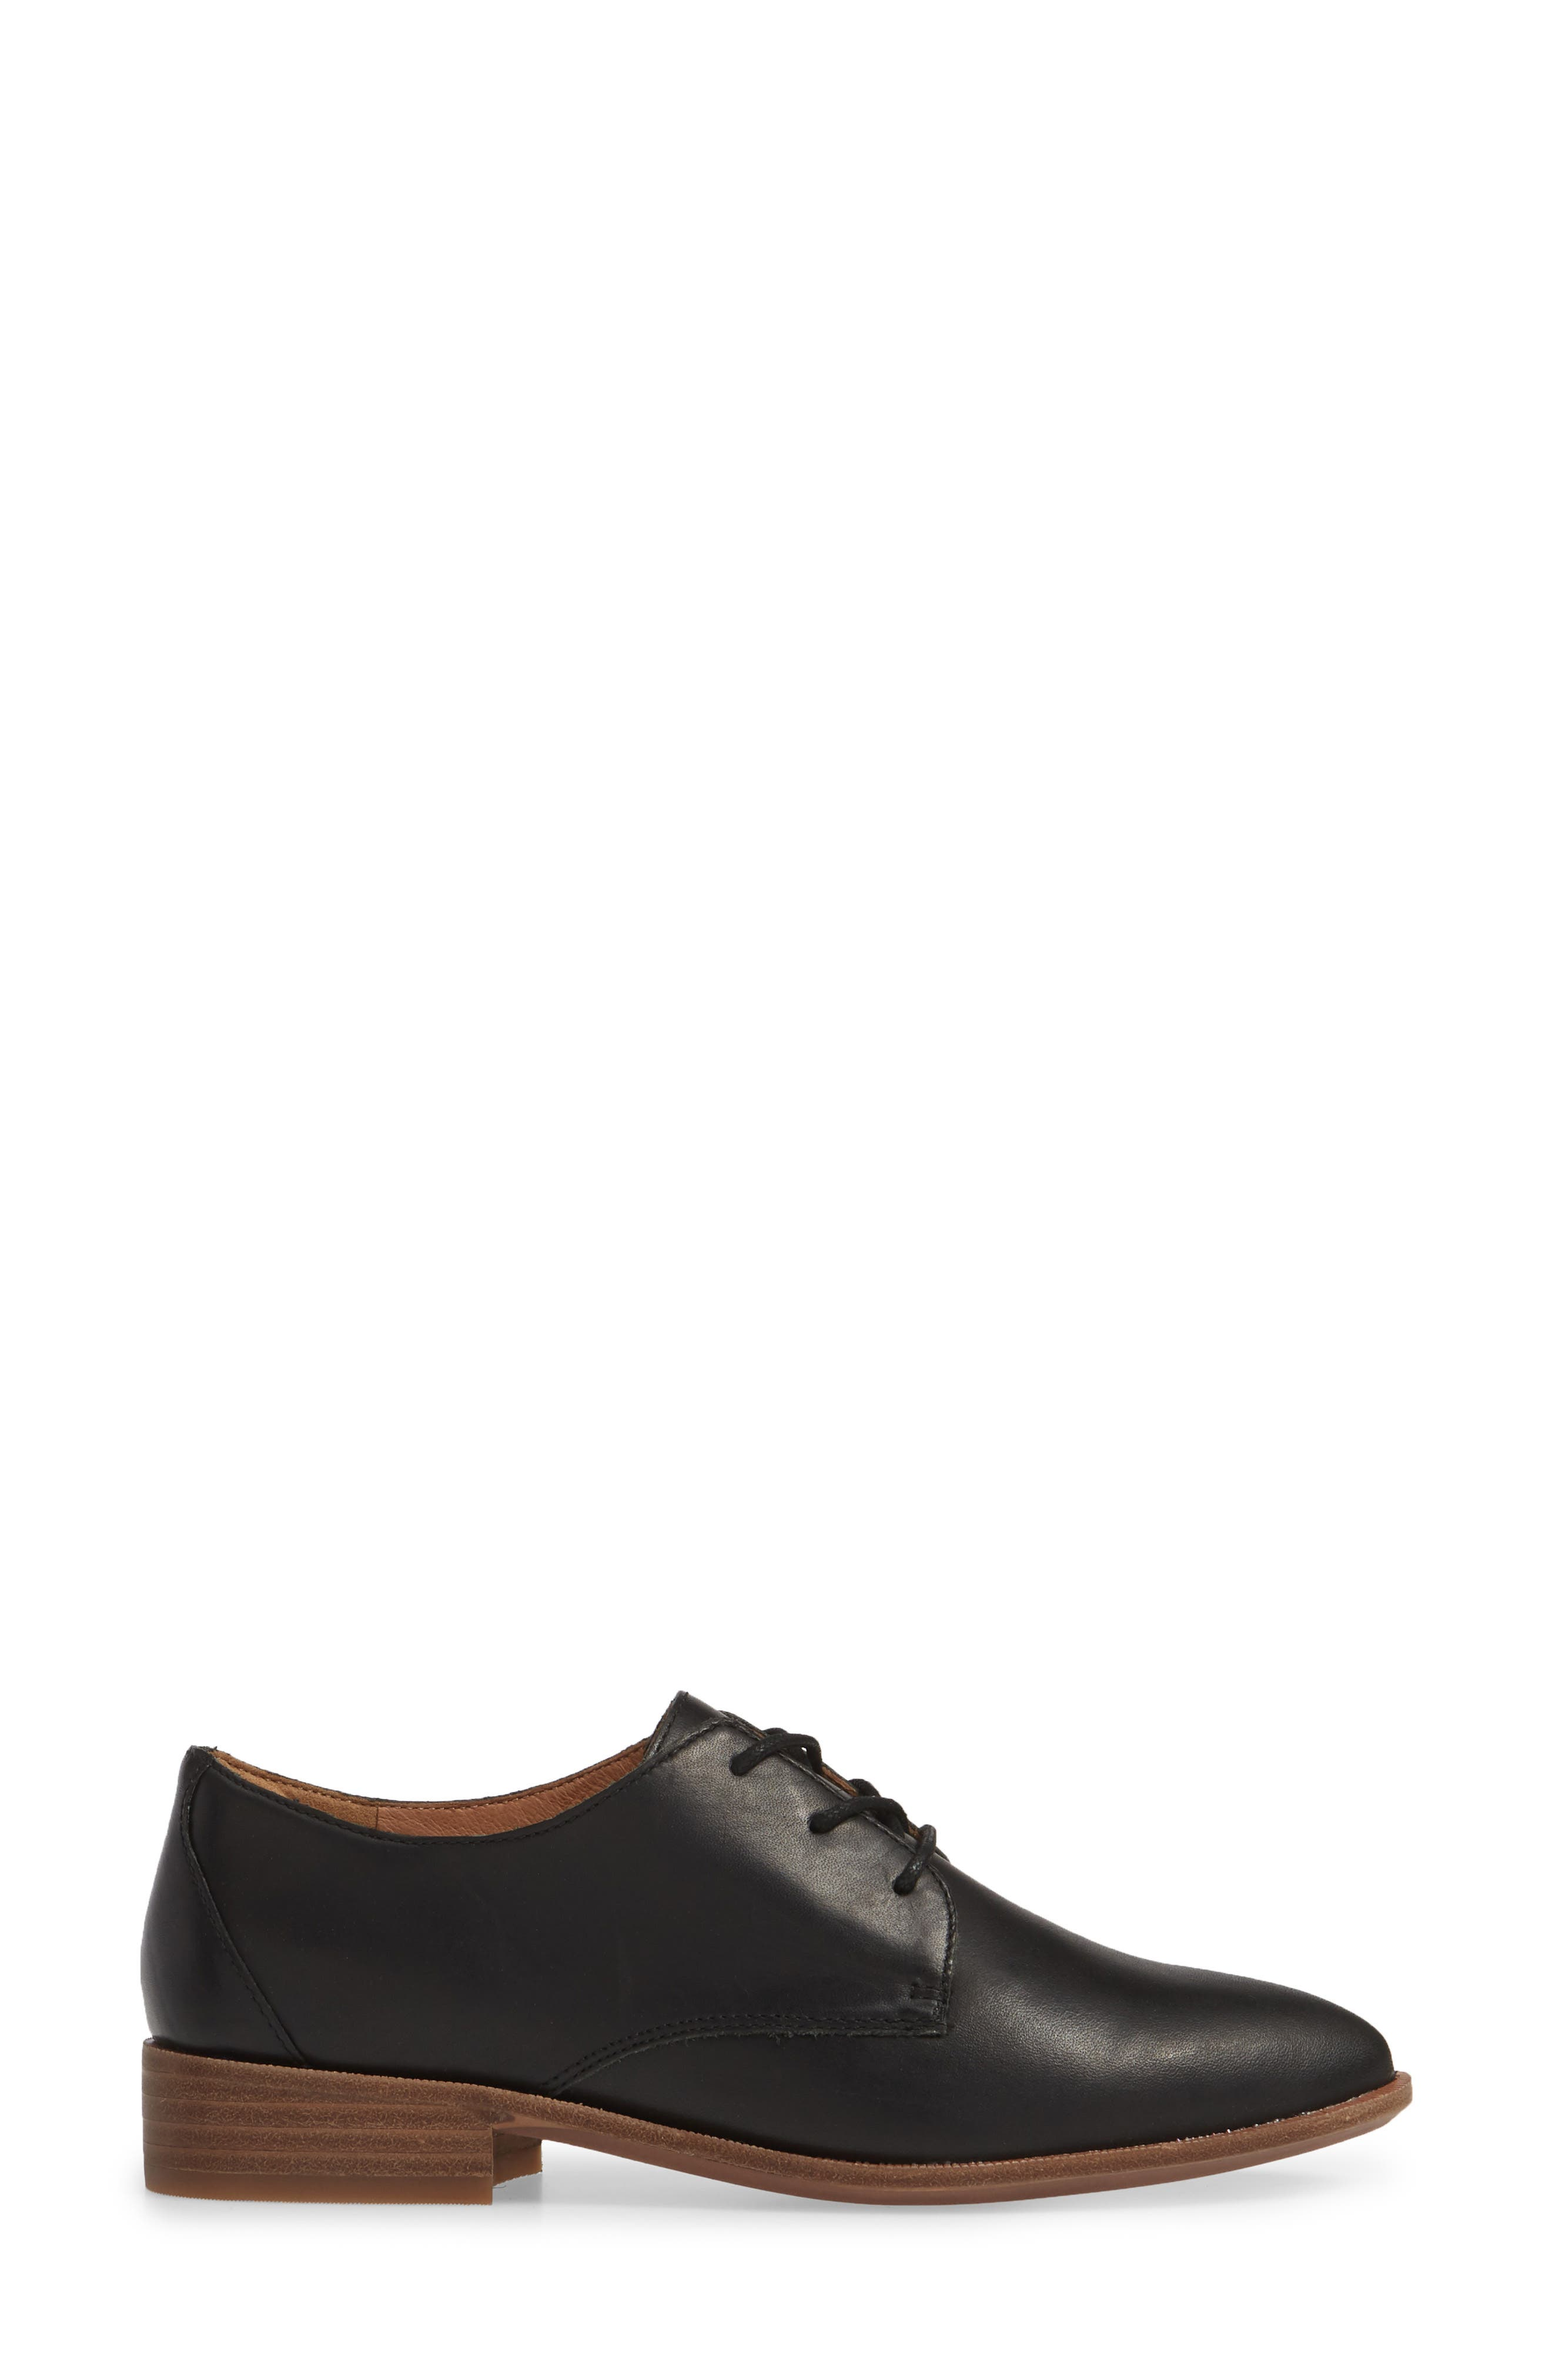 MADEWELL, The Frances Derby, Alternate thumbnail 3, color, TRUE BLACK